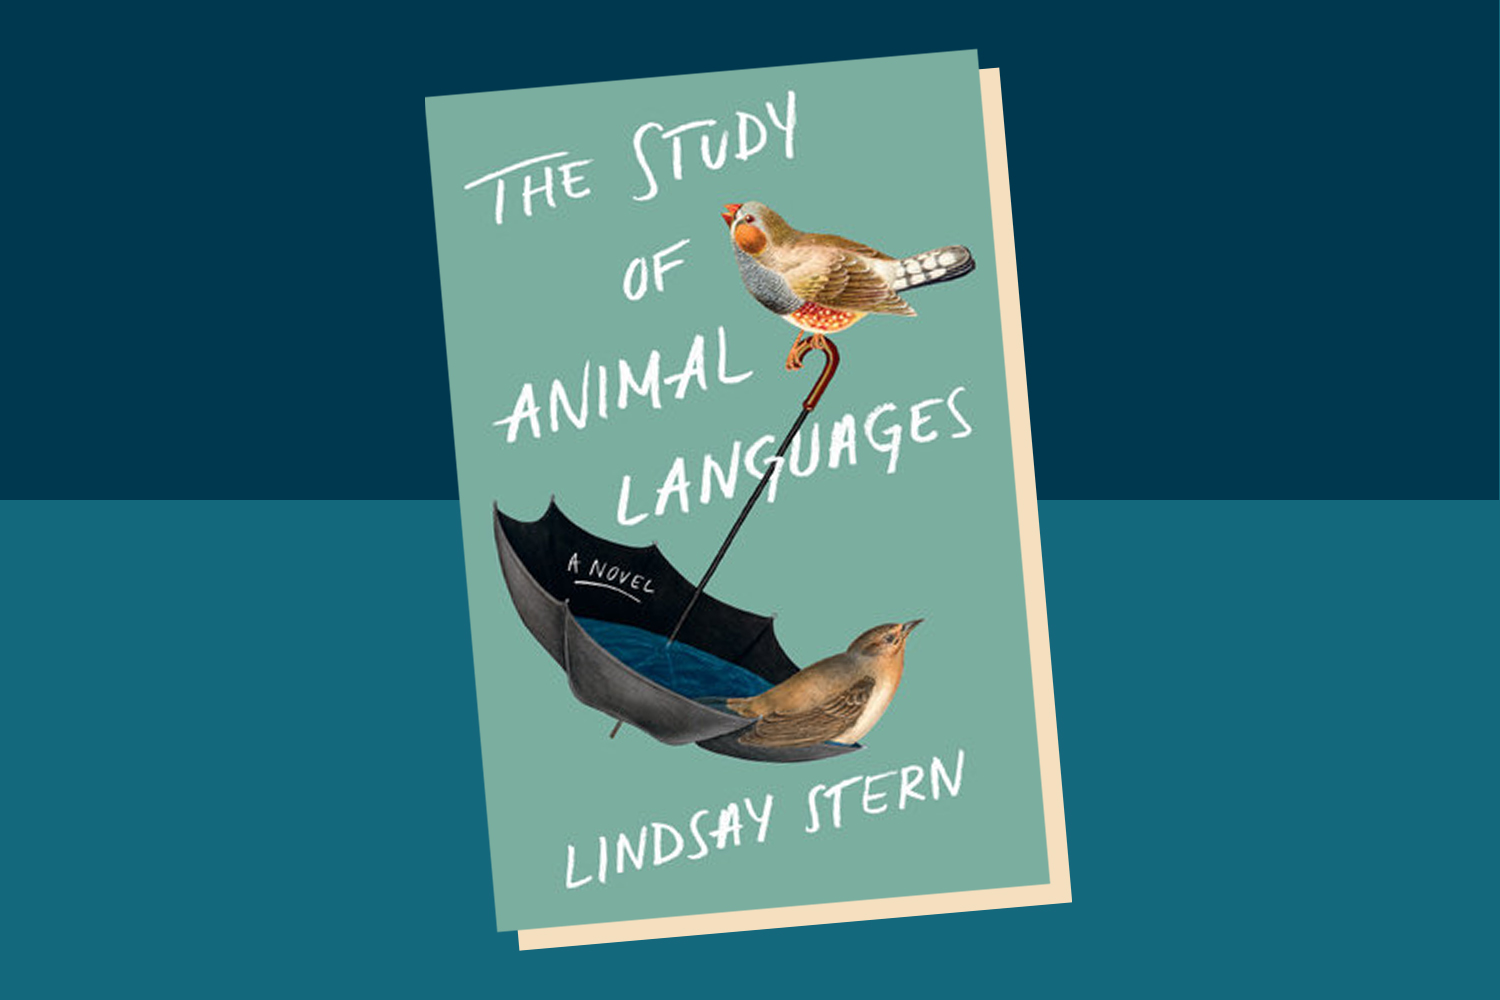 Picture of The Study of Animal Languages Lindsay Stern Interview